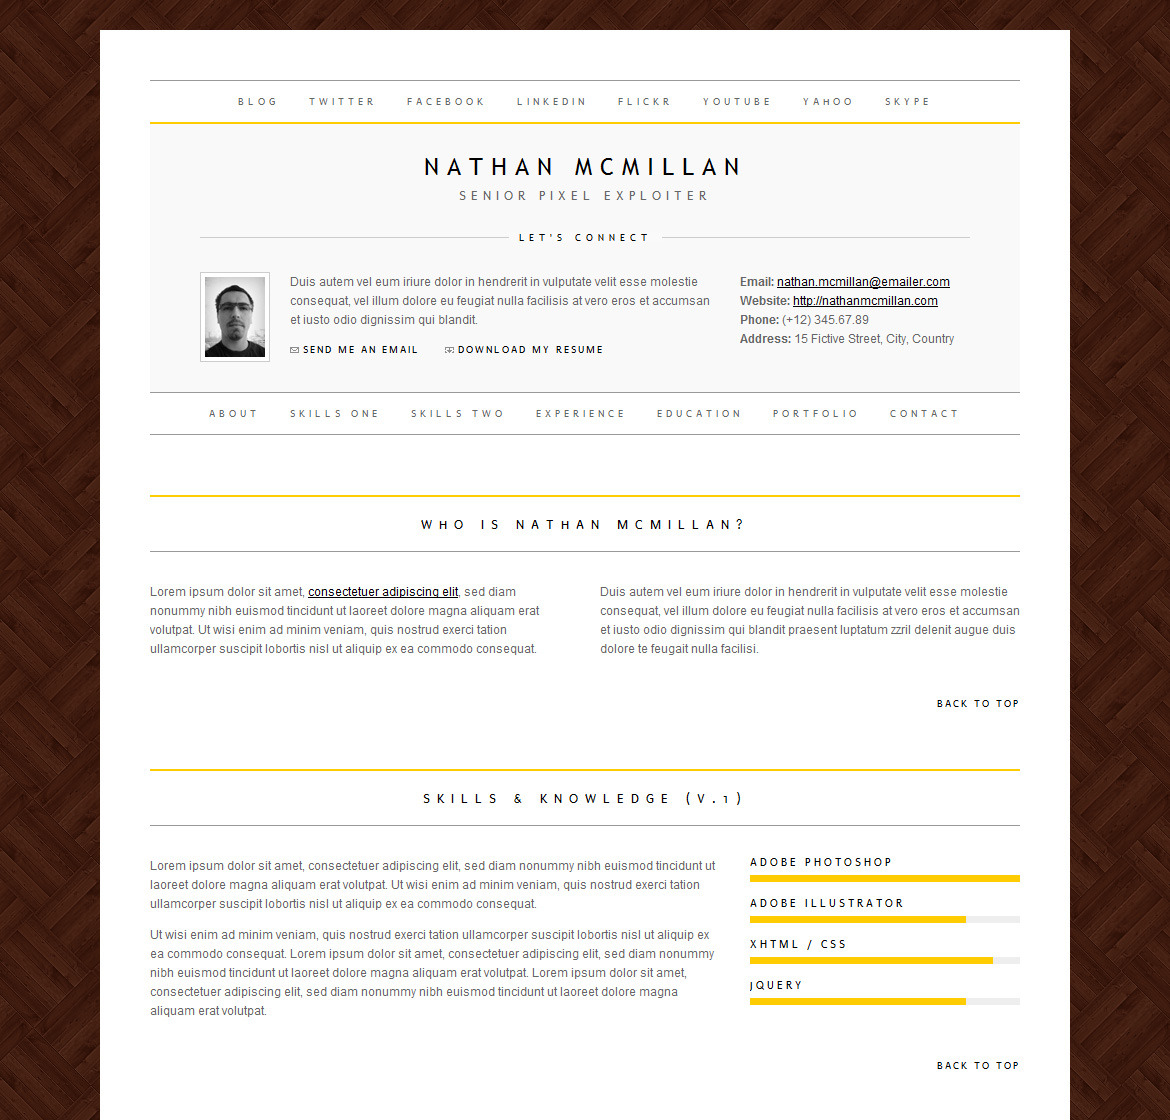 MinimalMe - Minimal HTML CV / Resume Template - Sample color and background image combination.